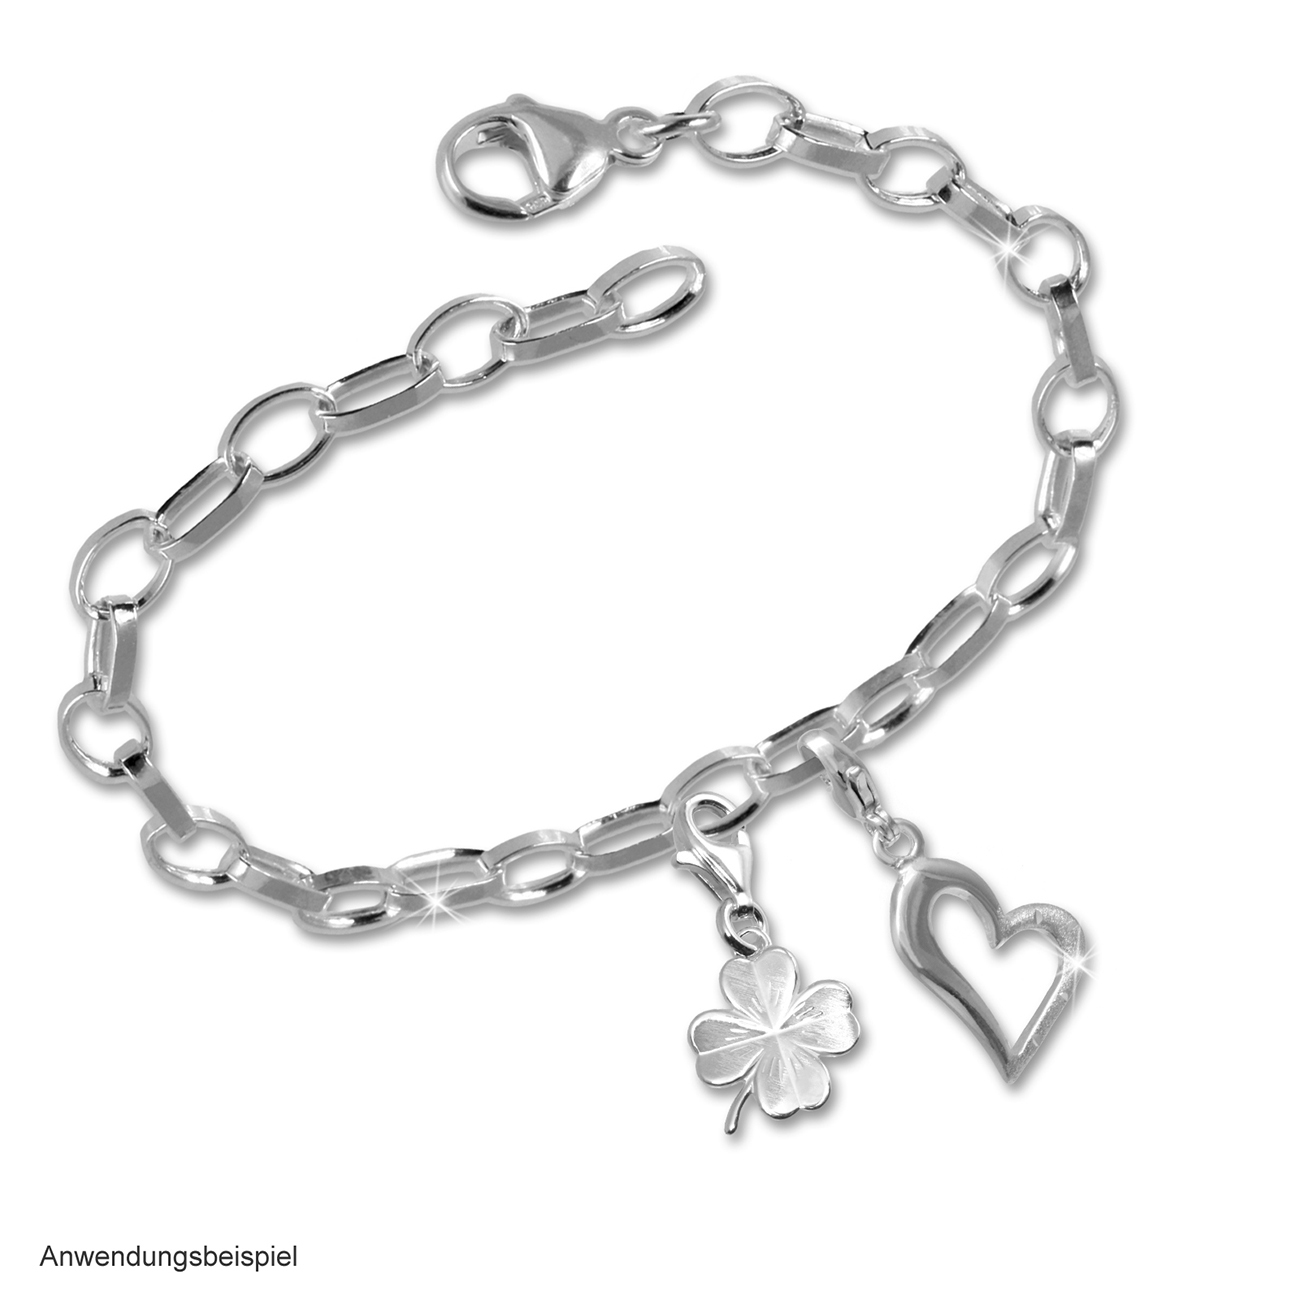 Bild 2 - Bettelarmband Silber Charms Dream